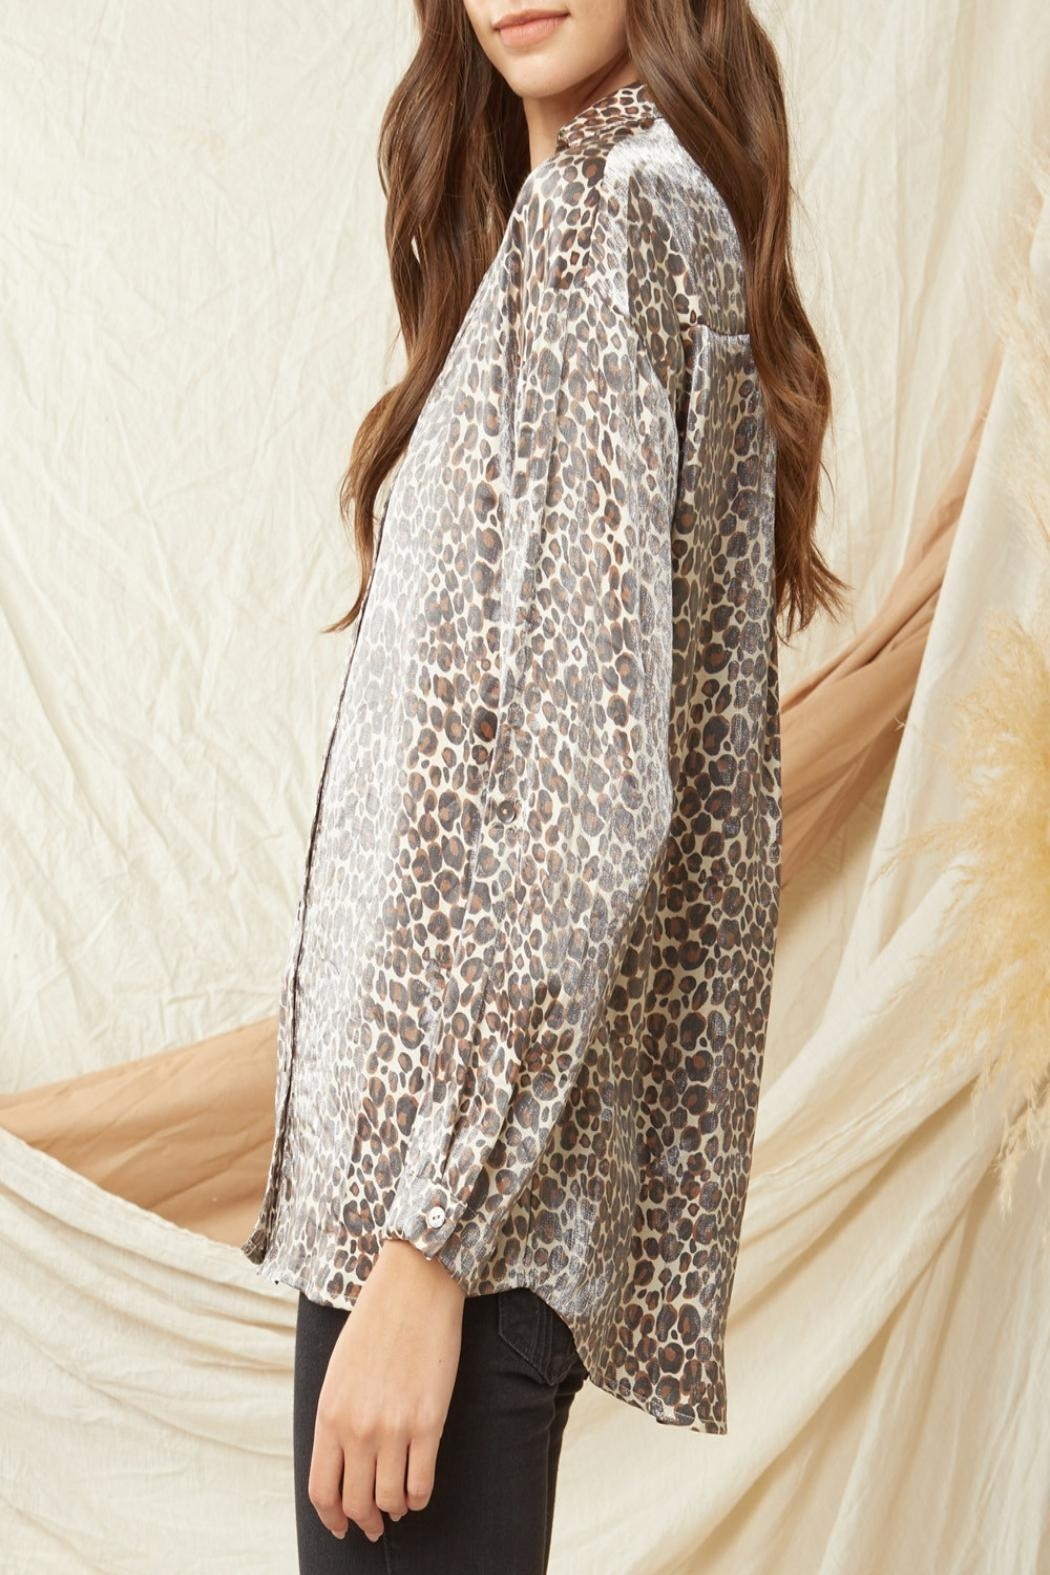 Entro Shimmer Leopard-Print Button-Down Top - Front Full Image